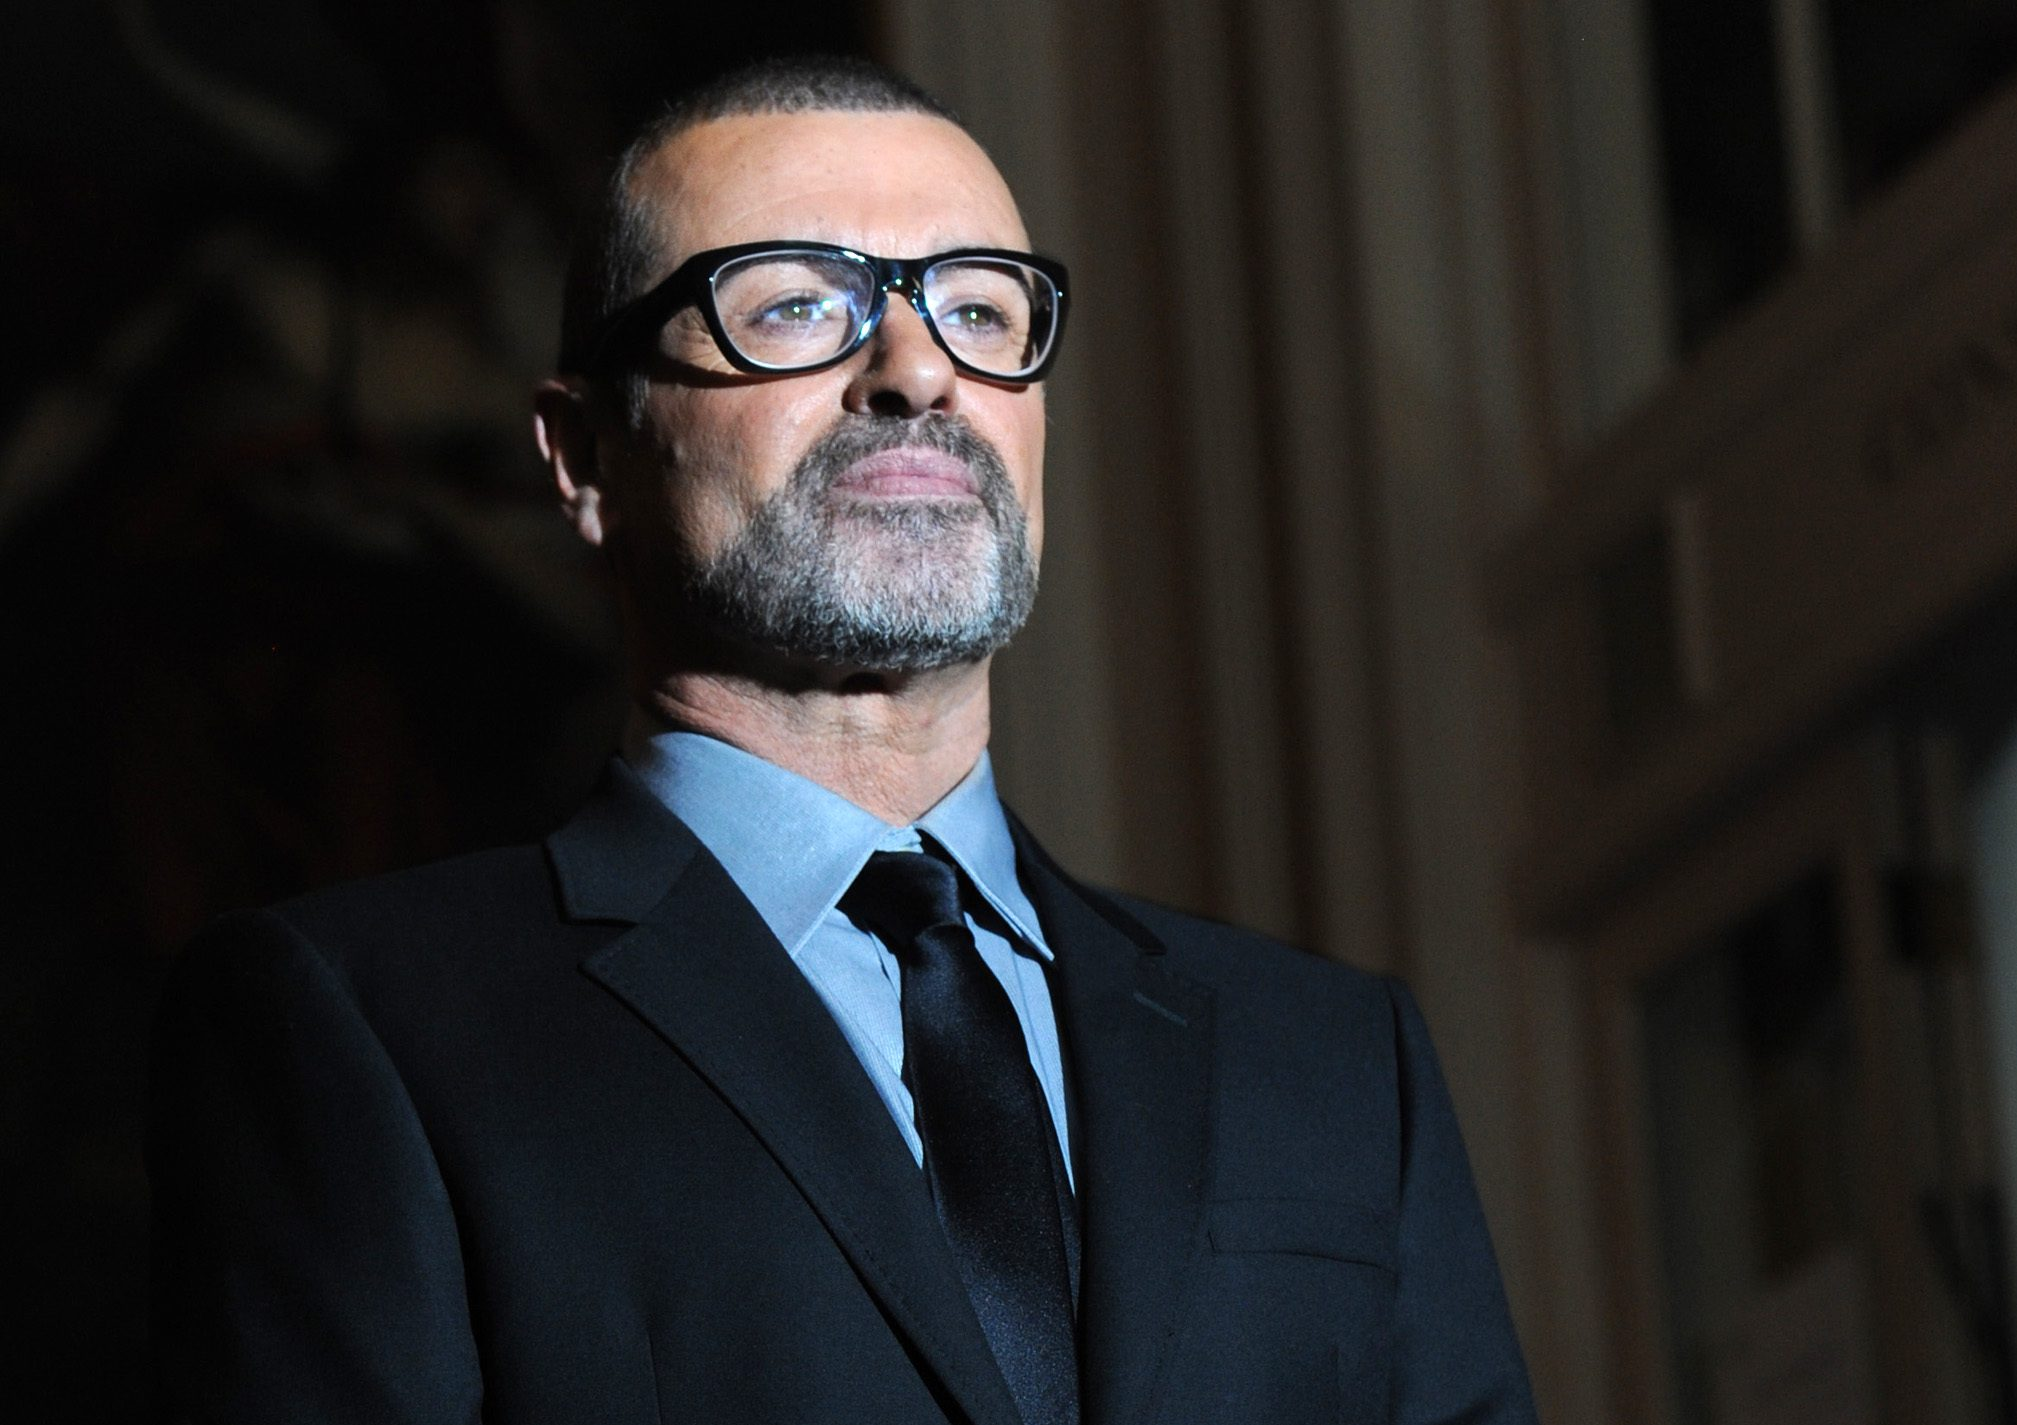 Woman who was given £9000 for IVF treatment by George Michael gives birth